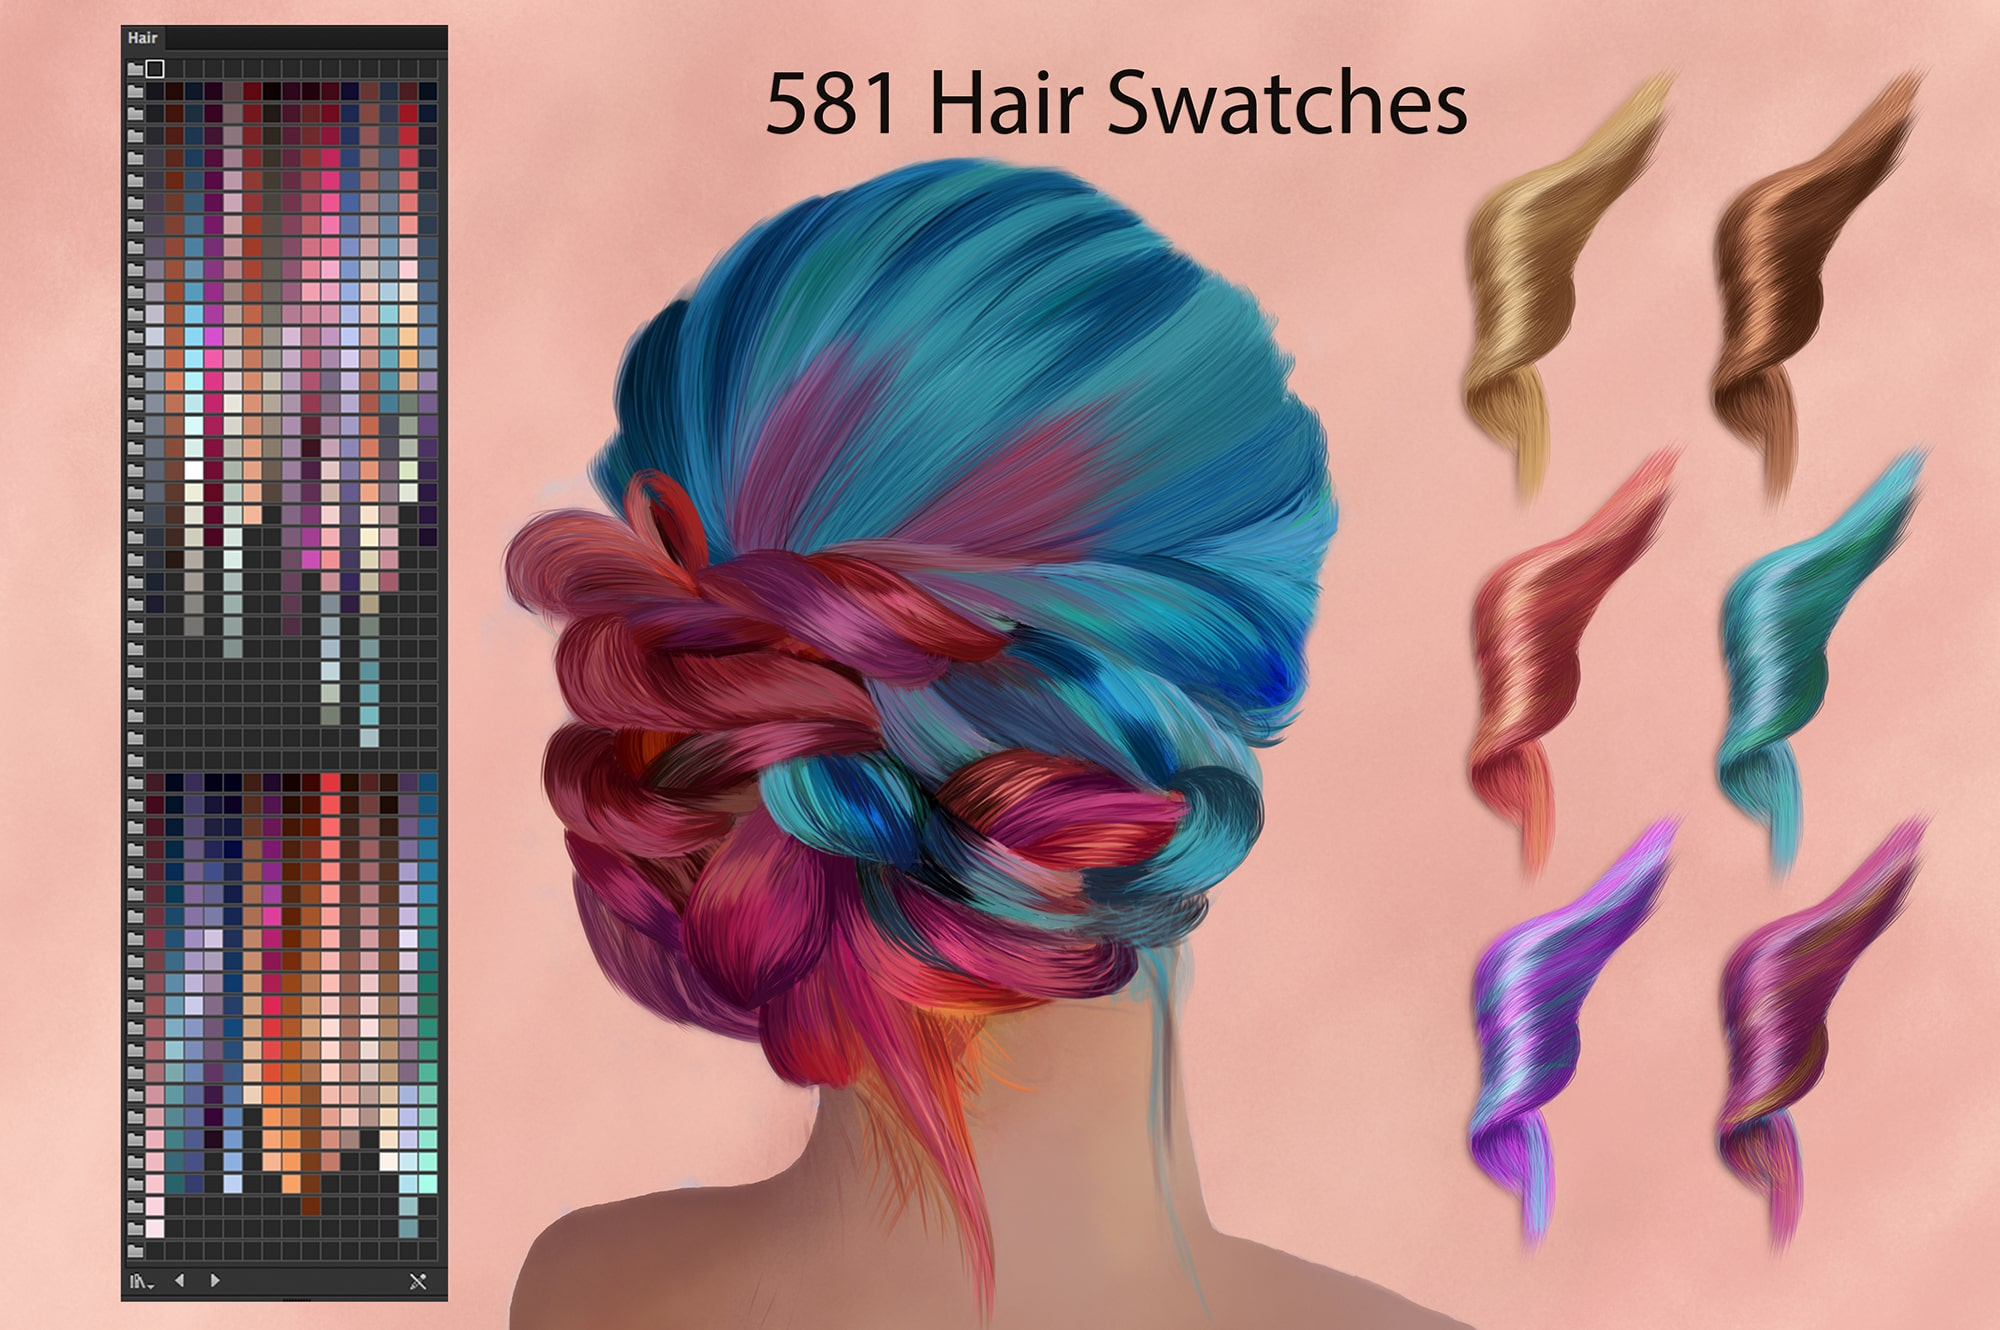 6924 Illustrator Swatches and Digital Painting - 9 min